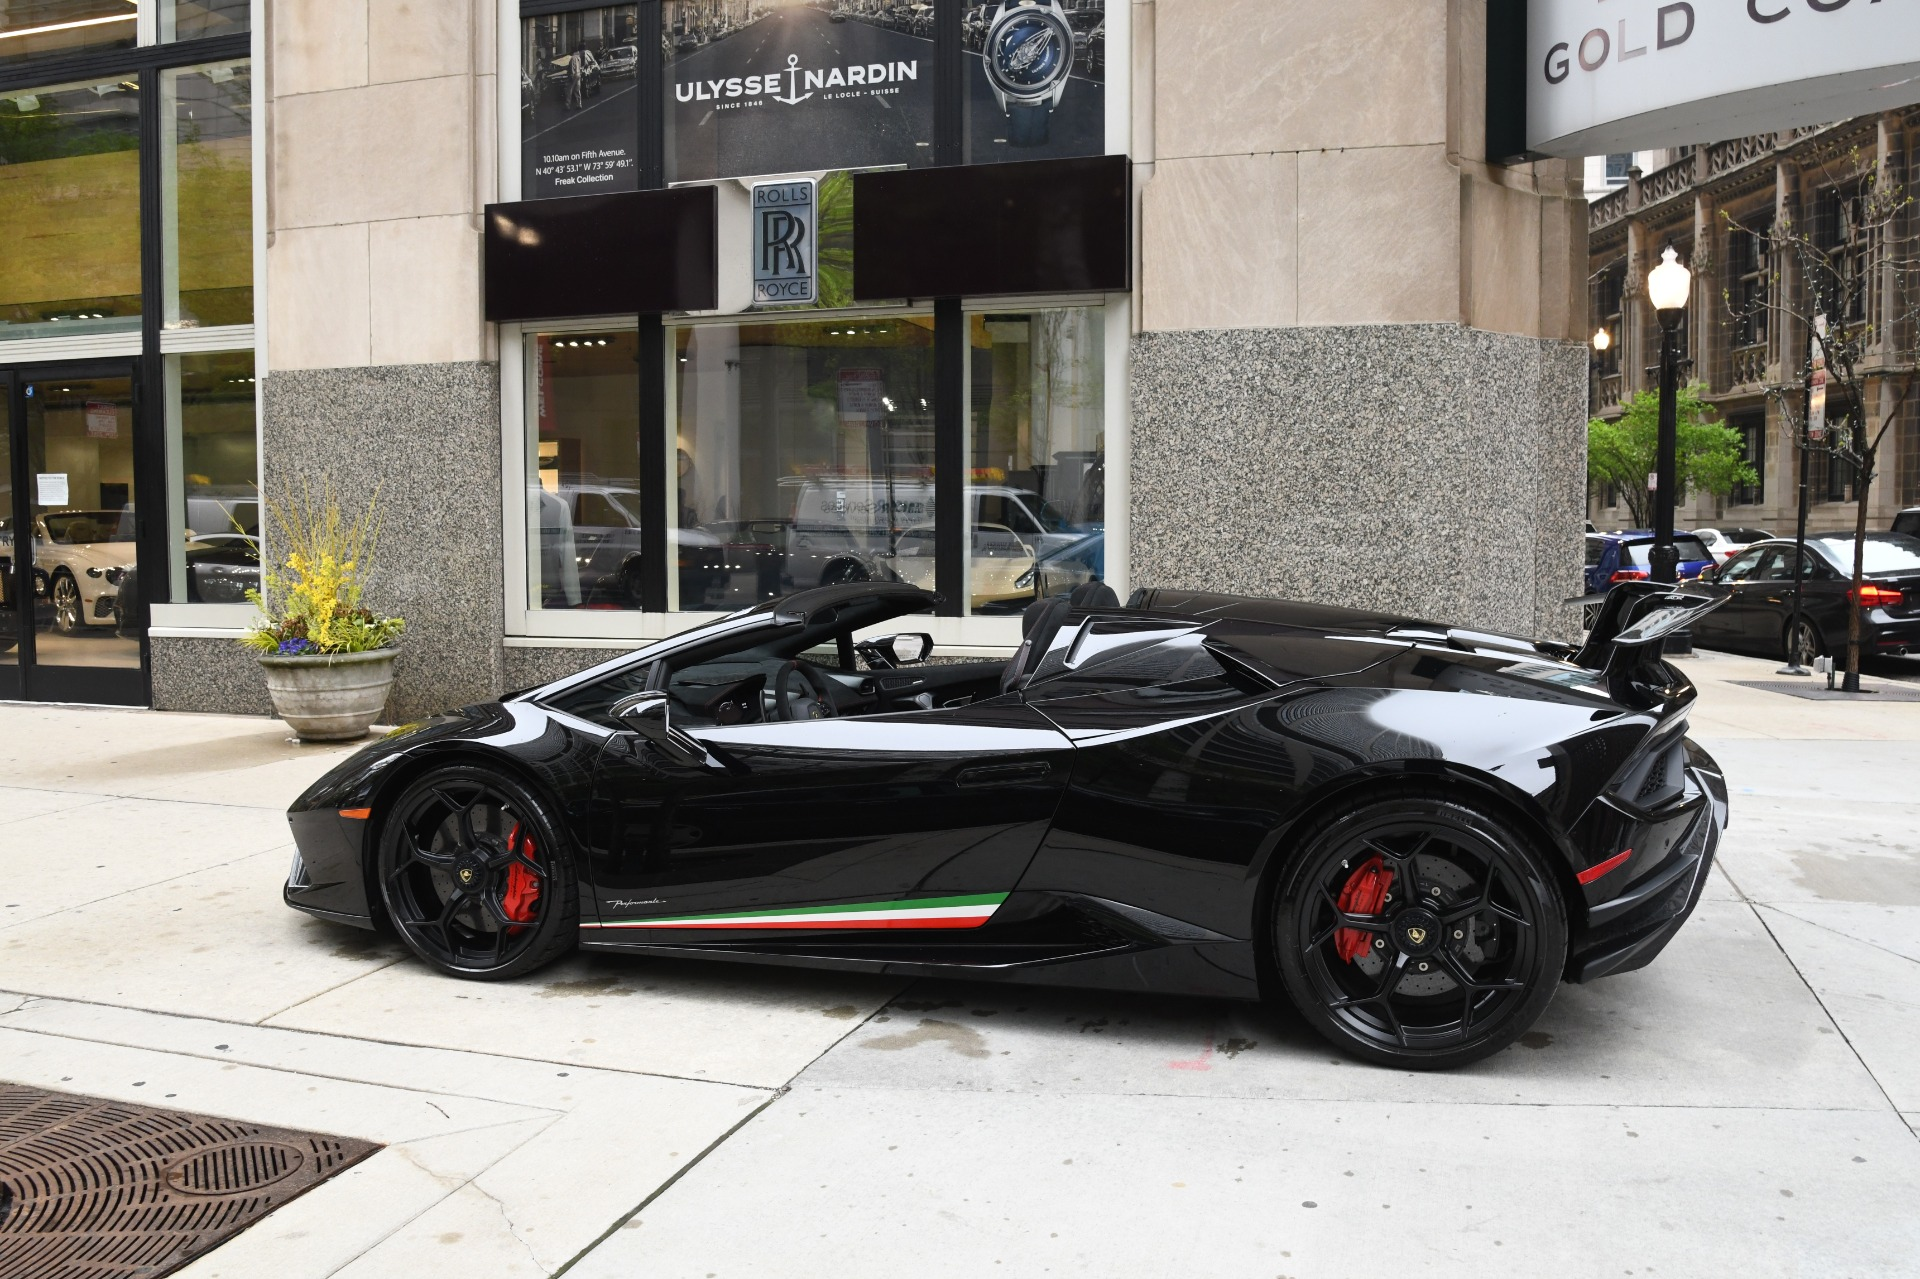 Used 2018 Lamborghini Huracan Performante Spyder LP 640-4 Performante Spyder | Chicago, IL